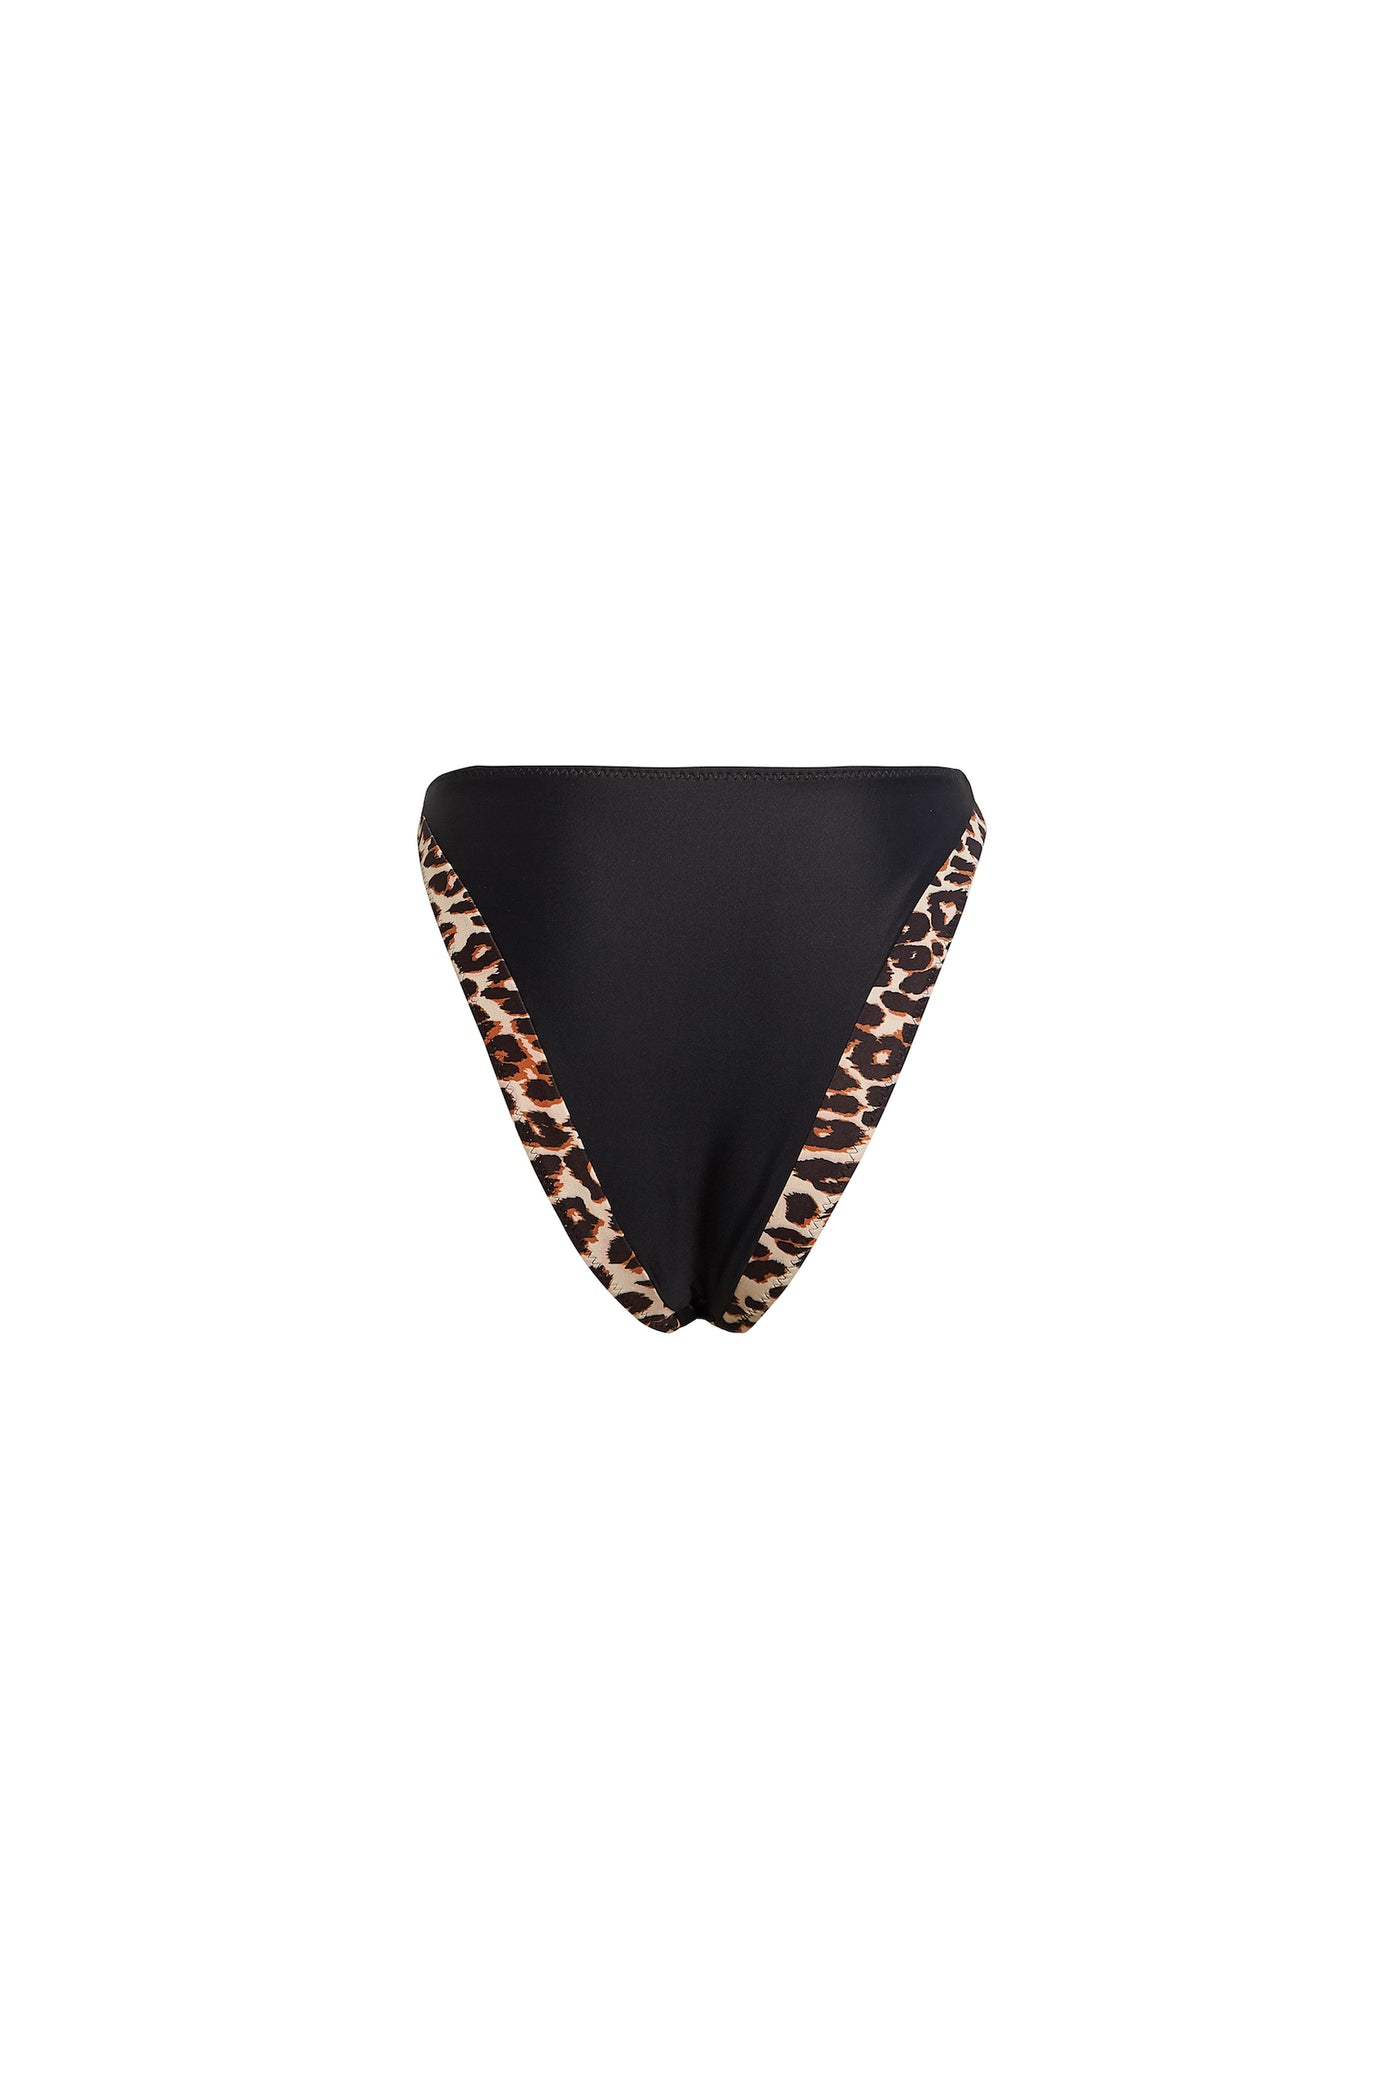 The Divine High Rise Bottom (Cheetah/Black)